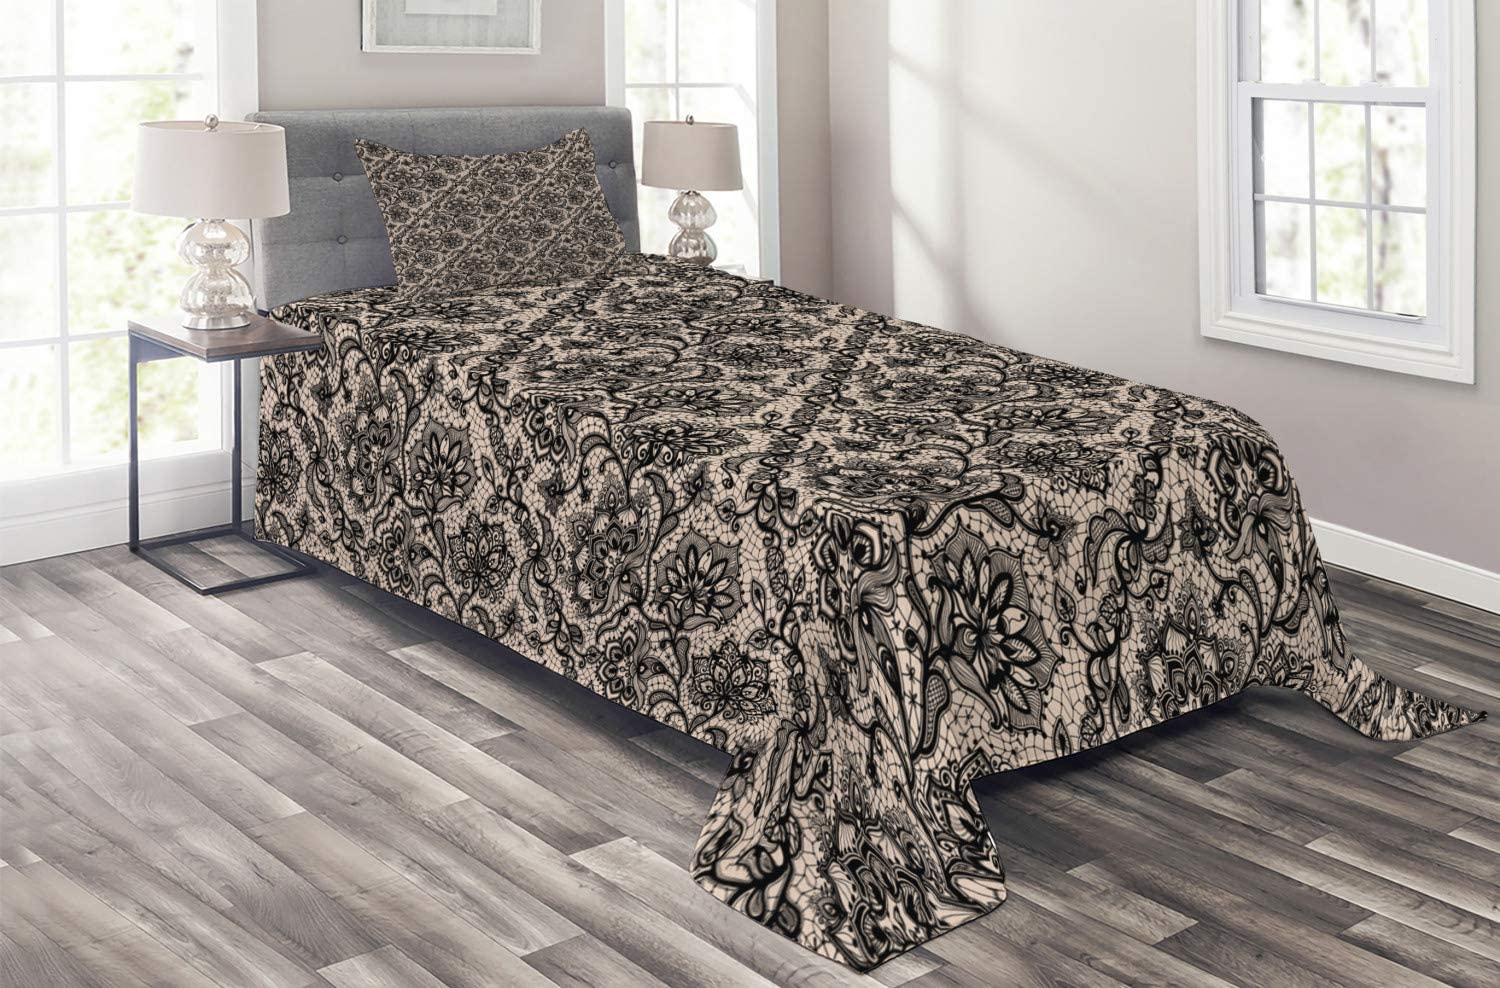 Ambesonne Gothic Coverlet Abstract Graphic Super intense SALE Pattern Lace Fl Ultra-Cheap Deals with